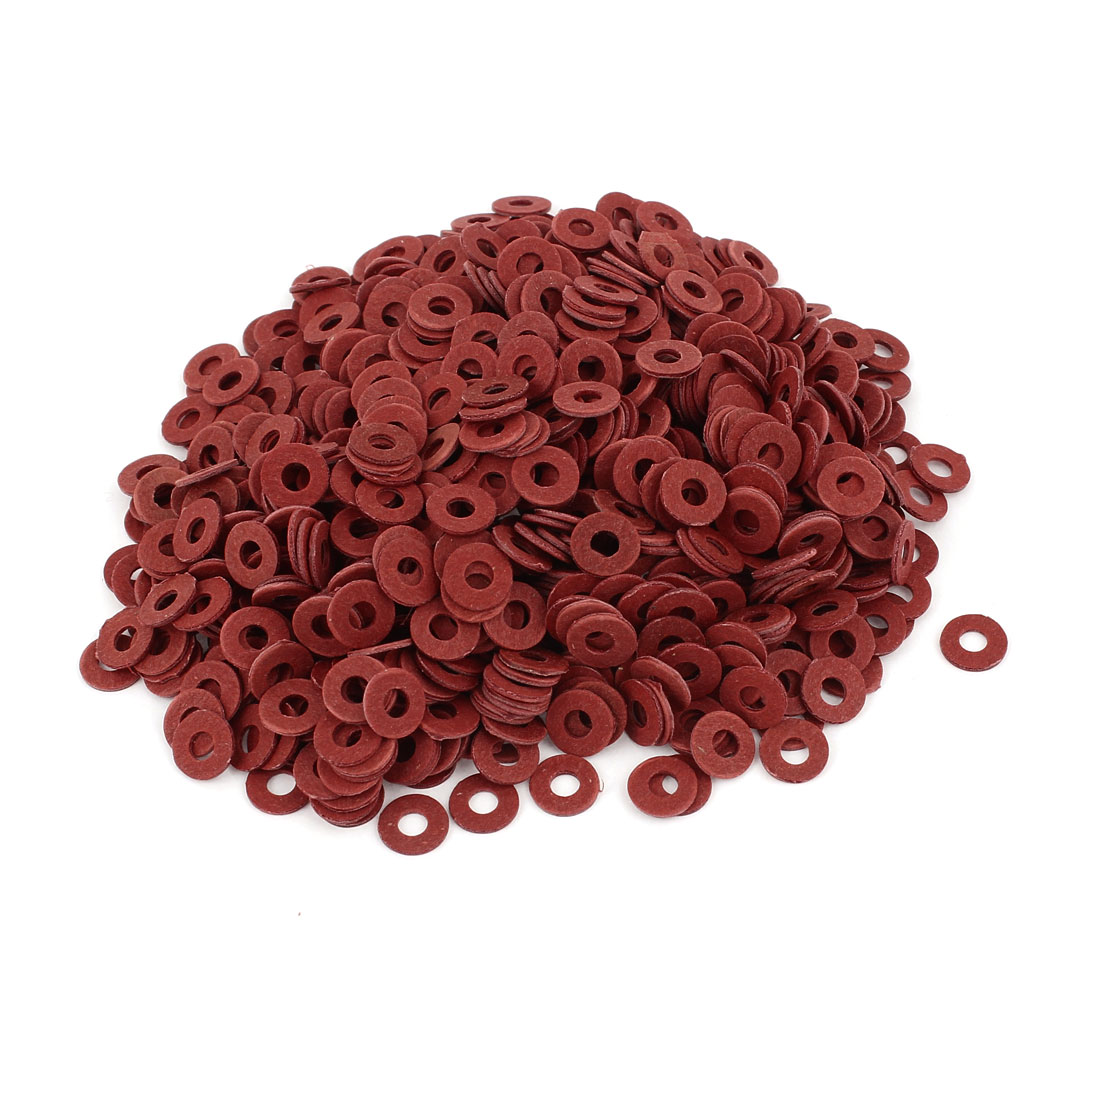 Fiber Flat Insulating Washer Ring 4mmx10mmx1mm 1000Pcs Red for Screws